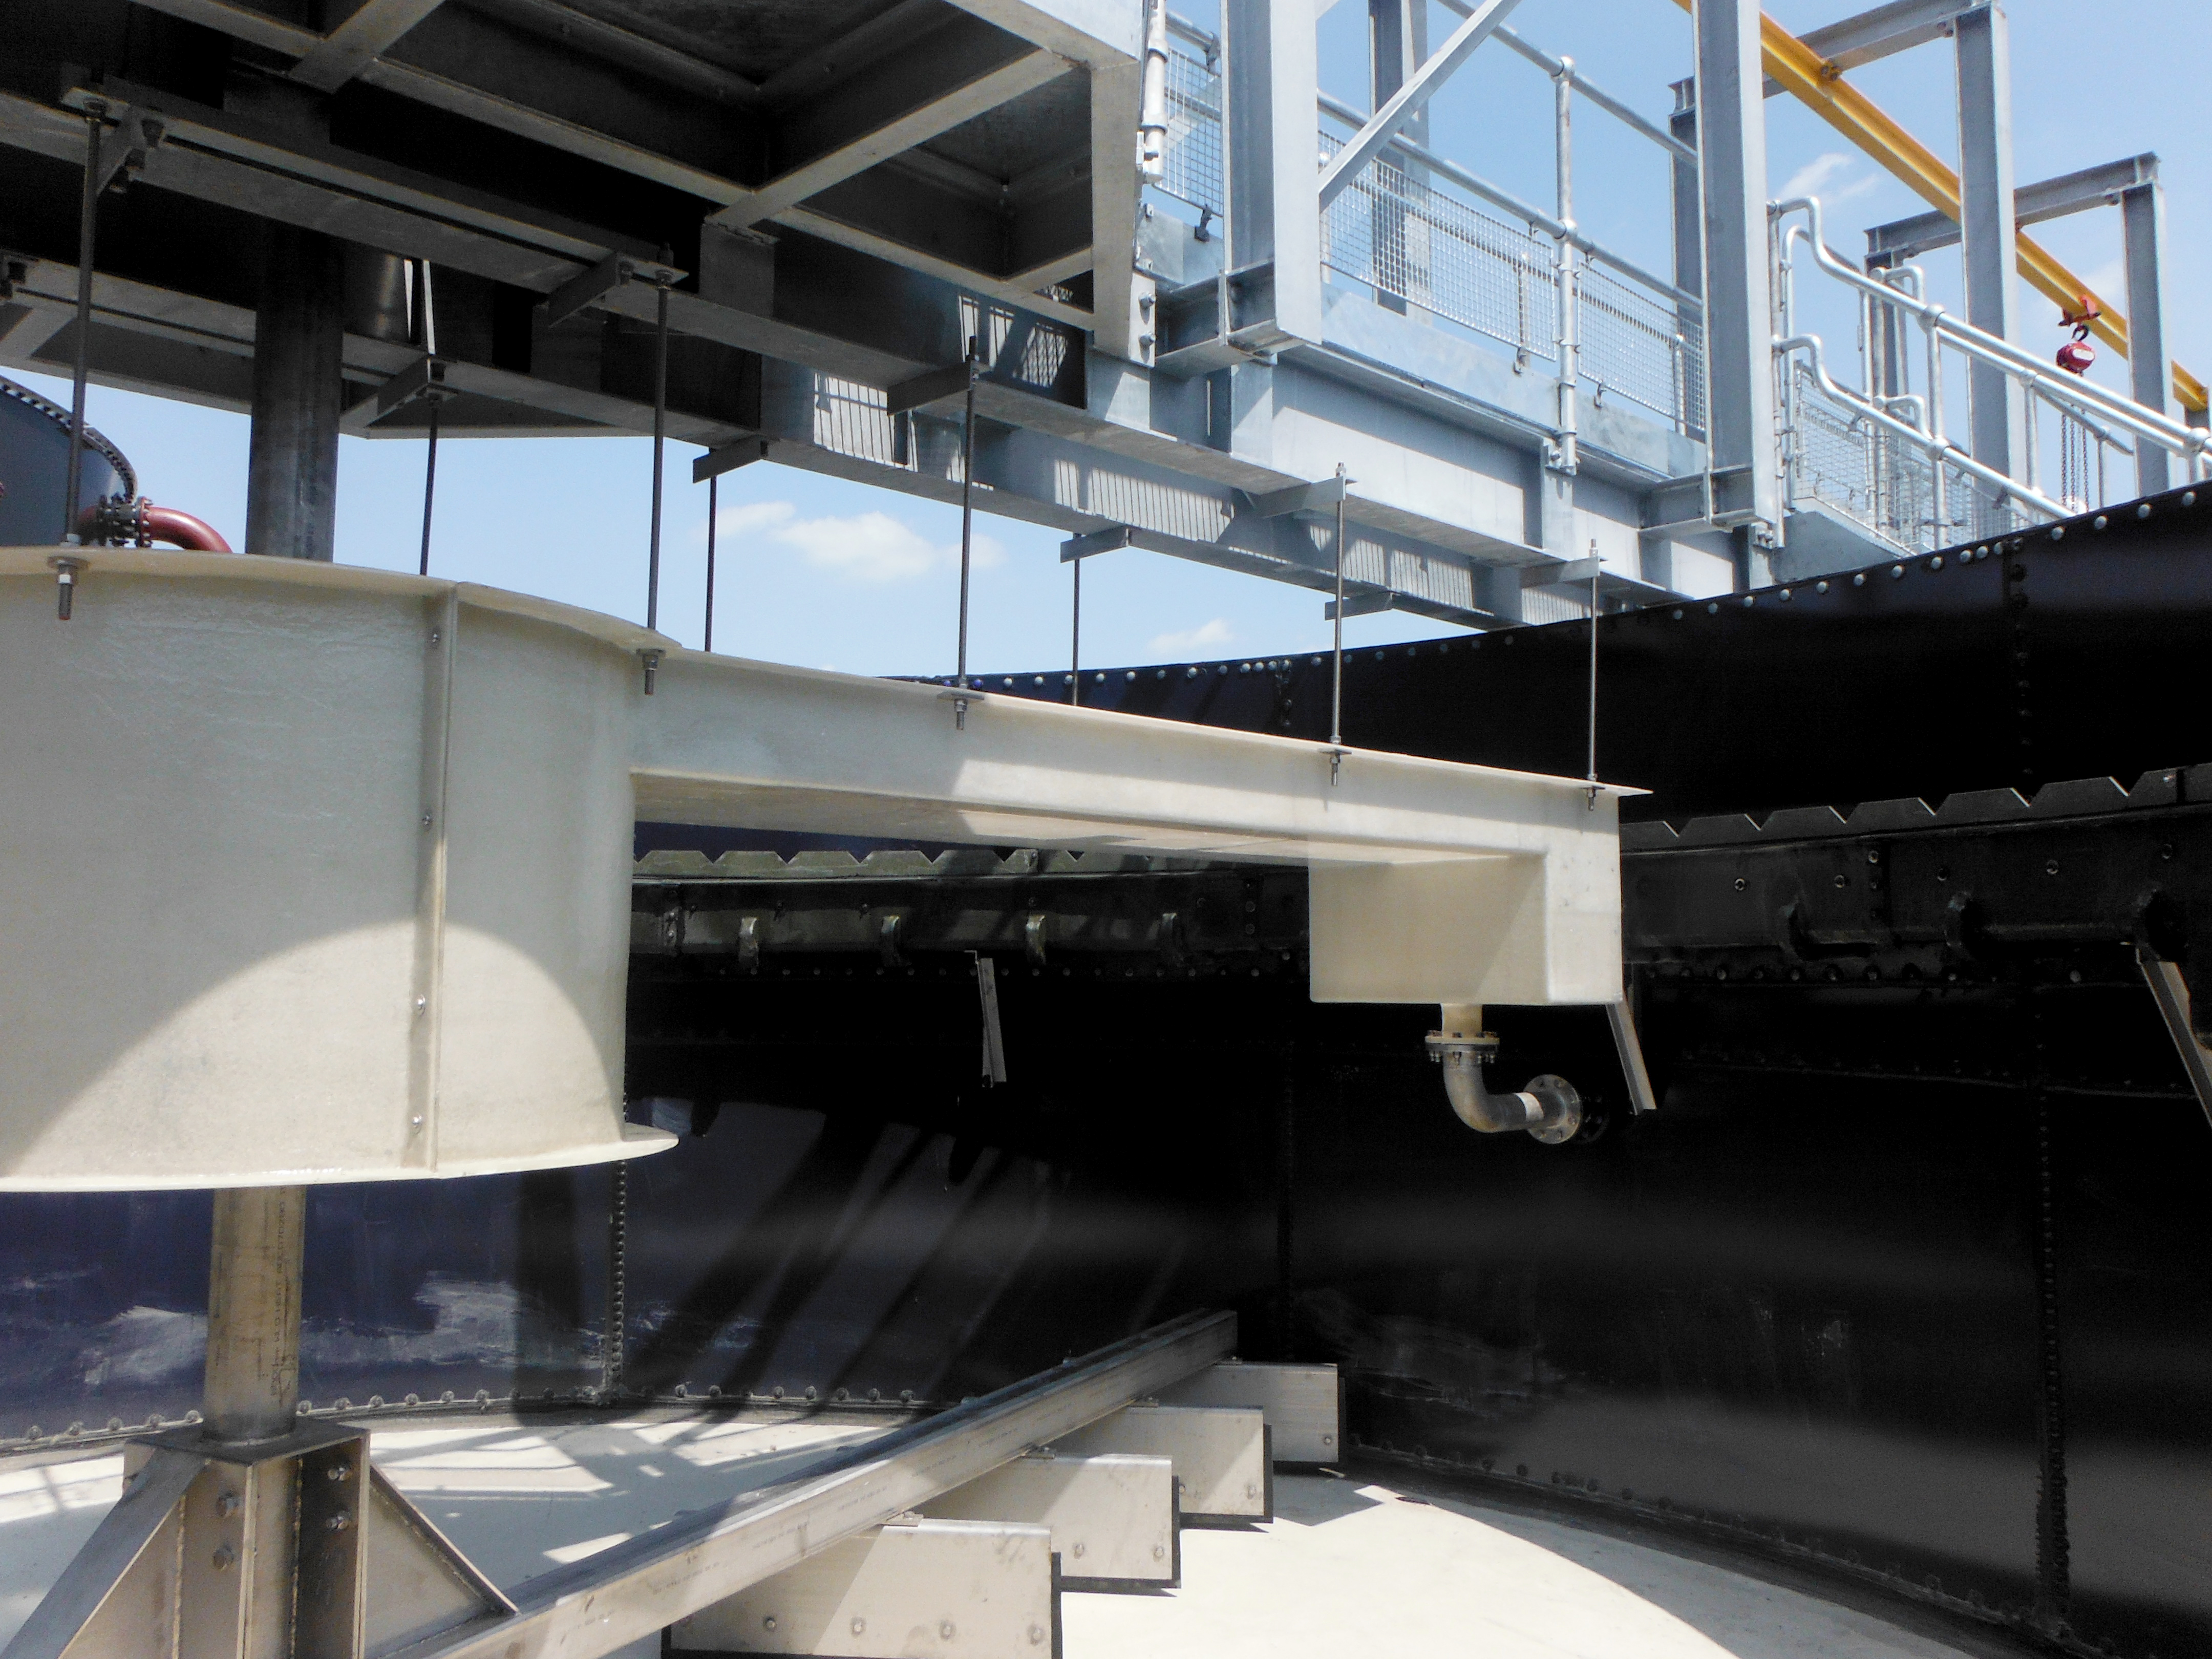 Turnkey sludge thickeners backed by expertise and experience